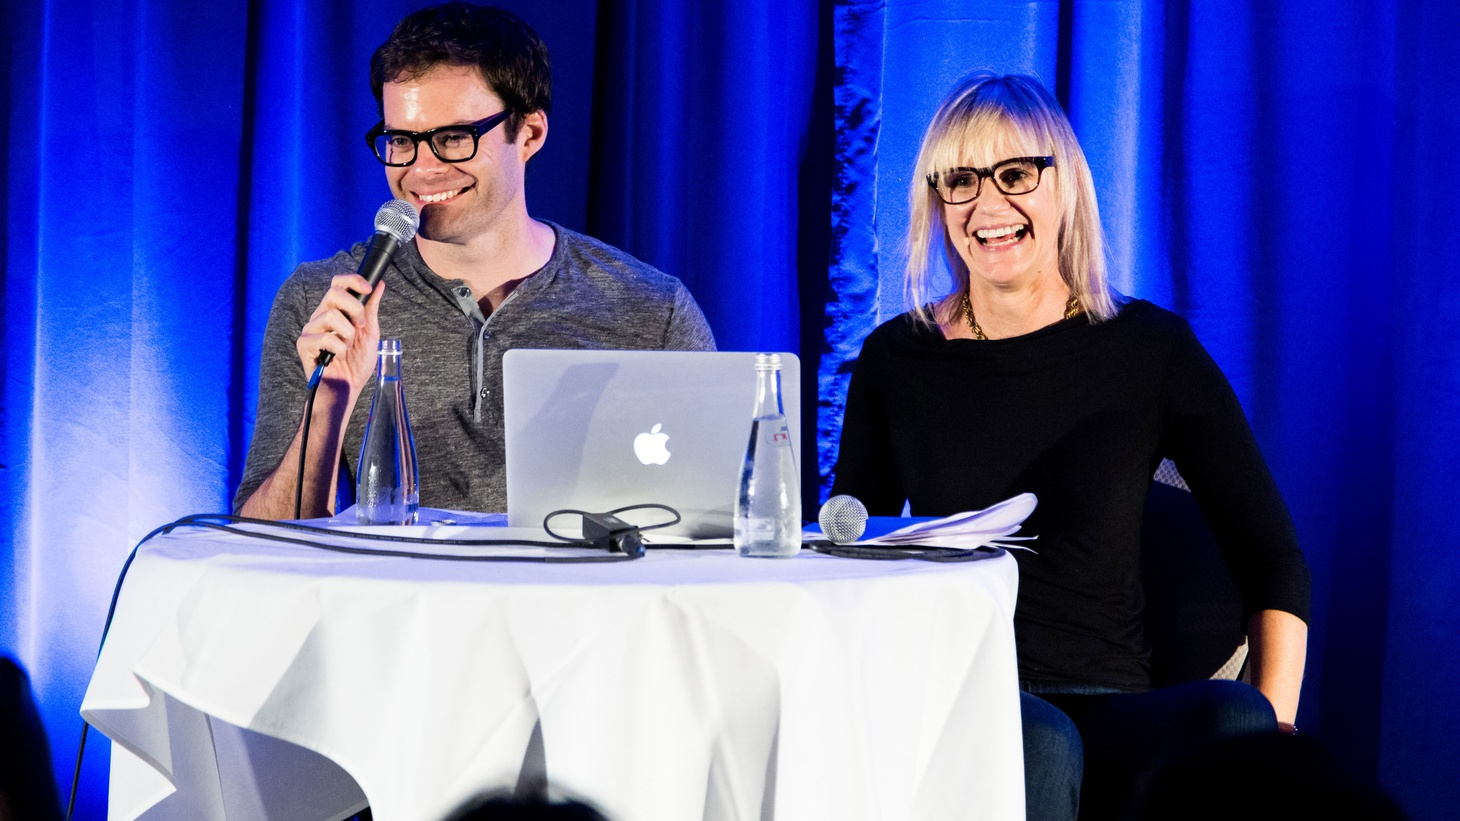 Bill Hader was a standout during his eight seasons on Saturday Night Live and starred in Amy Schumer's breakout comedy Trainwreck. We catch up with him for a live taping of the Guest DJ Project at the LA Podcast Fest.